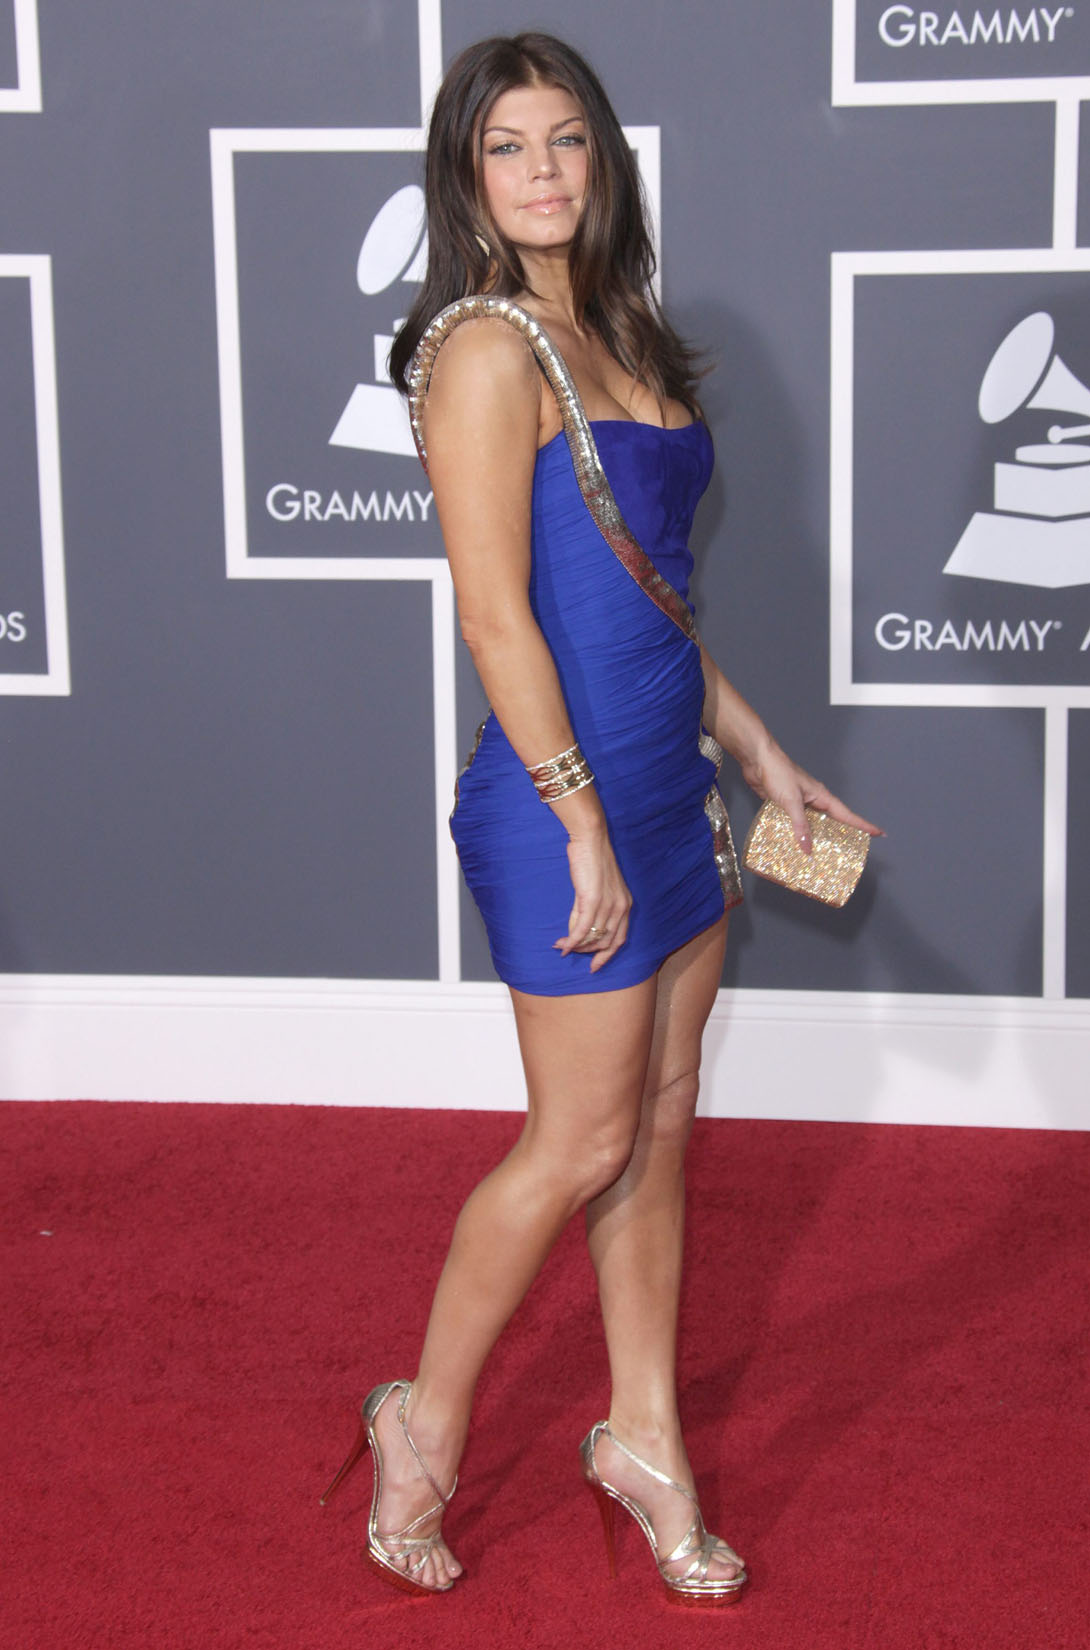 at grammys women Sexy